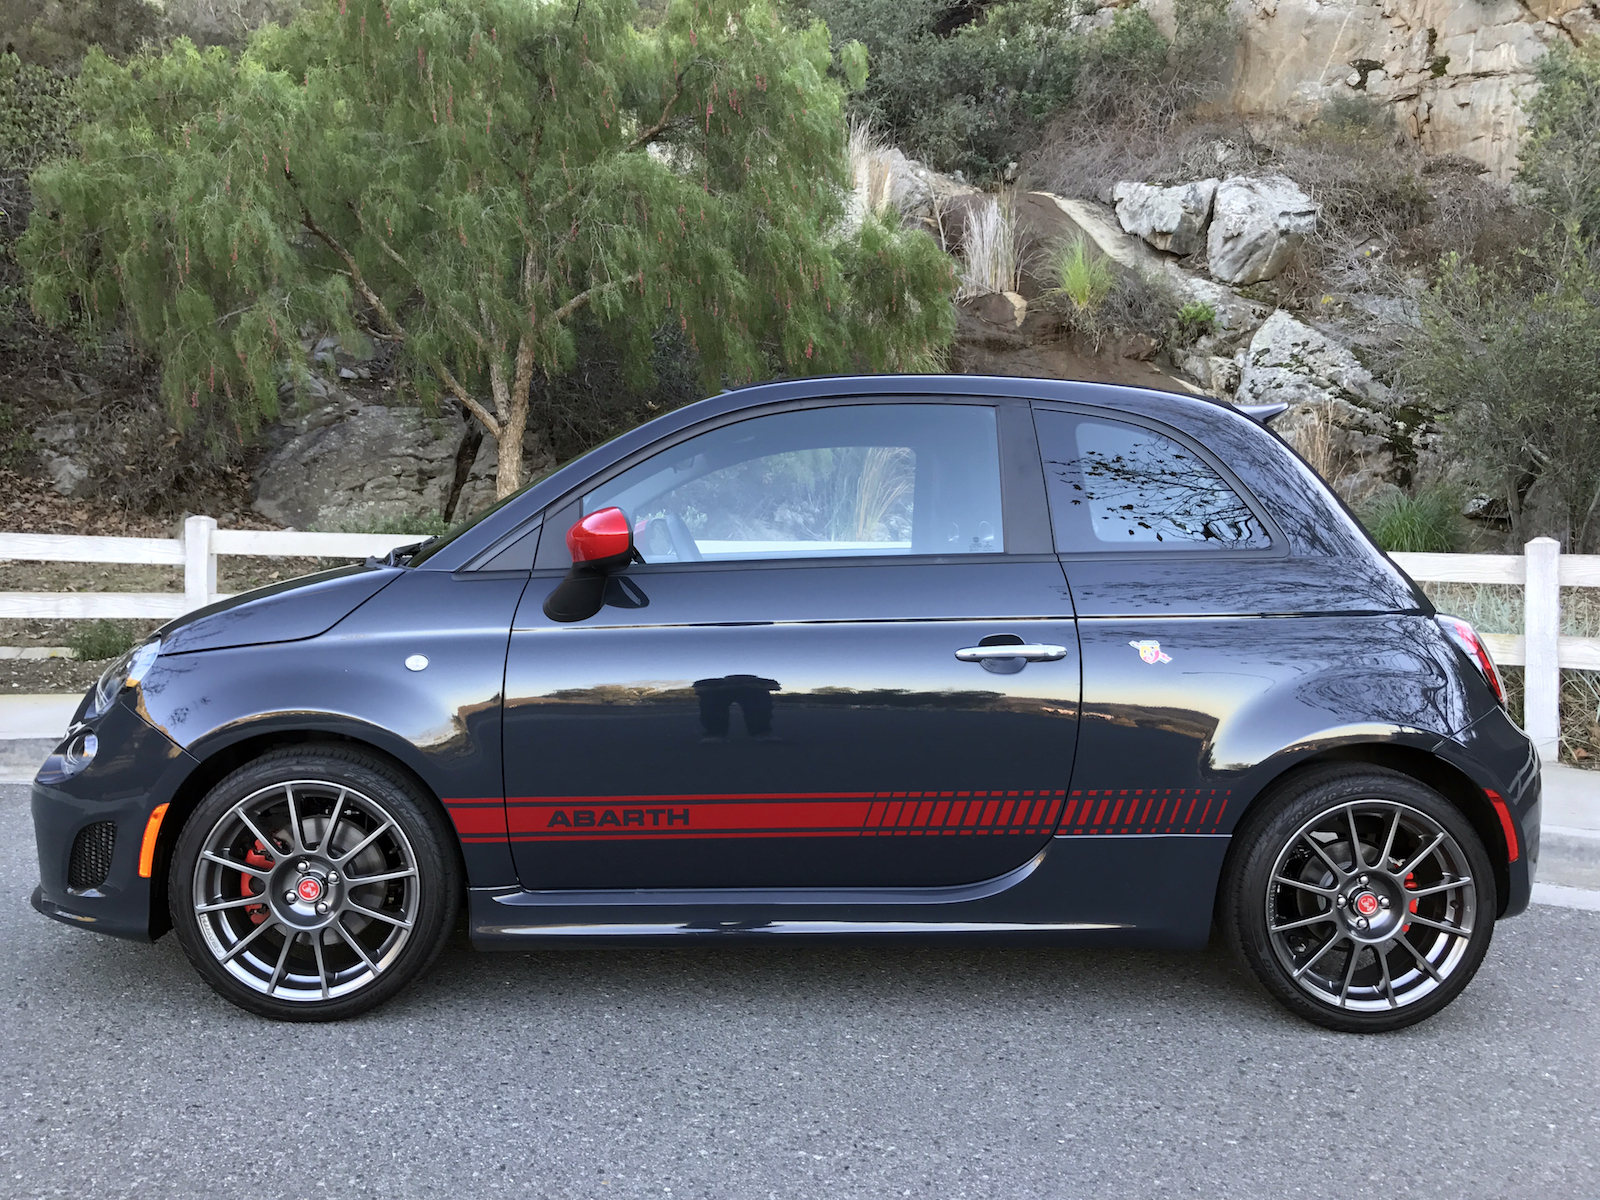 duke s drive 2016 fiat 500c abarth review chris duke. Black Bedroom Furniture Sets. Home Design Ideas